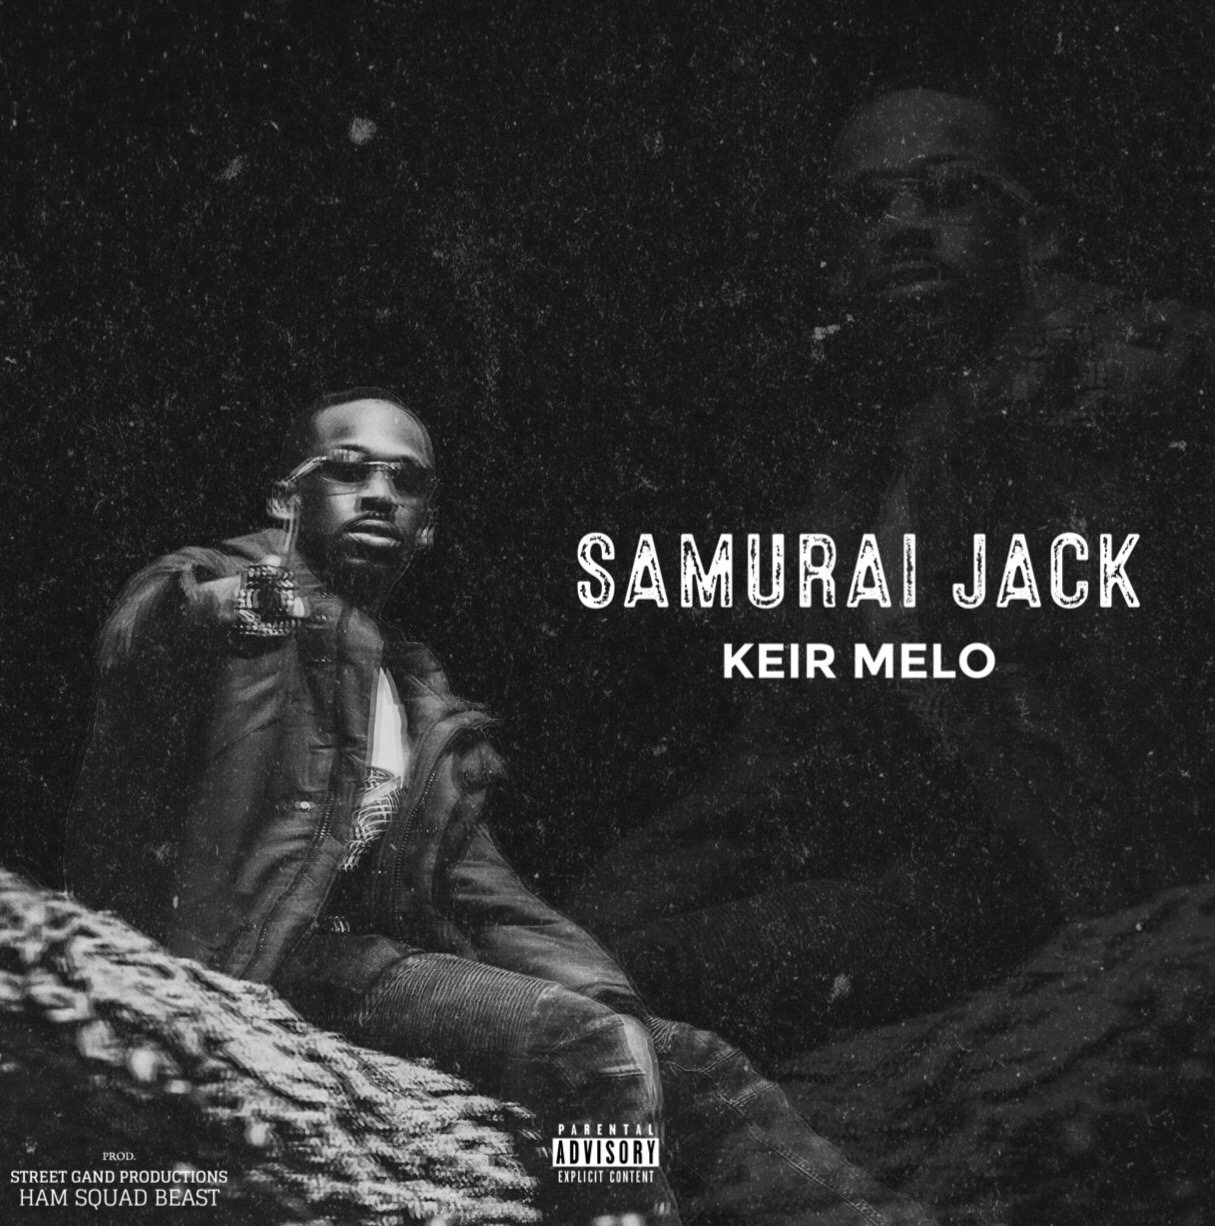 """Detroit rising artist KEIR MELO releases his first single of 2019 titled """"Samurai Jack"""". Bringing hard hitting lyrics with an edgy versatile flow. KEIR MELO manages to ride alongslide producers of the song, Street Gang Productions & Ham Squad Beast.  Follow KEIR MELO:    @keirmelo     Follow Street Gang Productions:    @streetgangproductions     Listen to  Samurai Jack  below."""